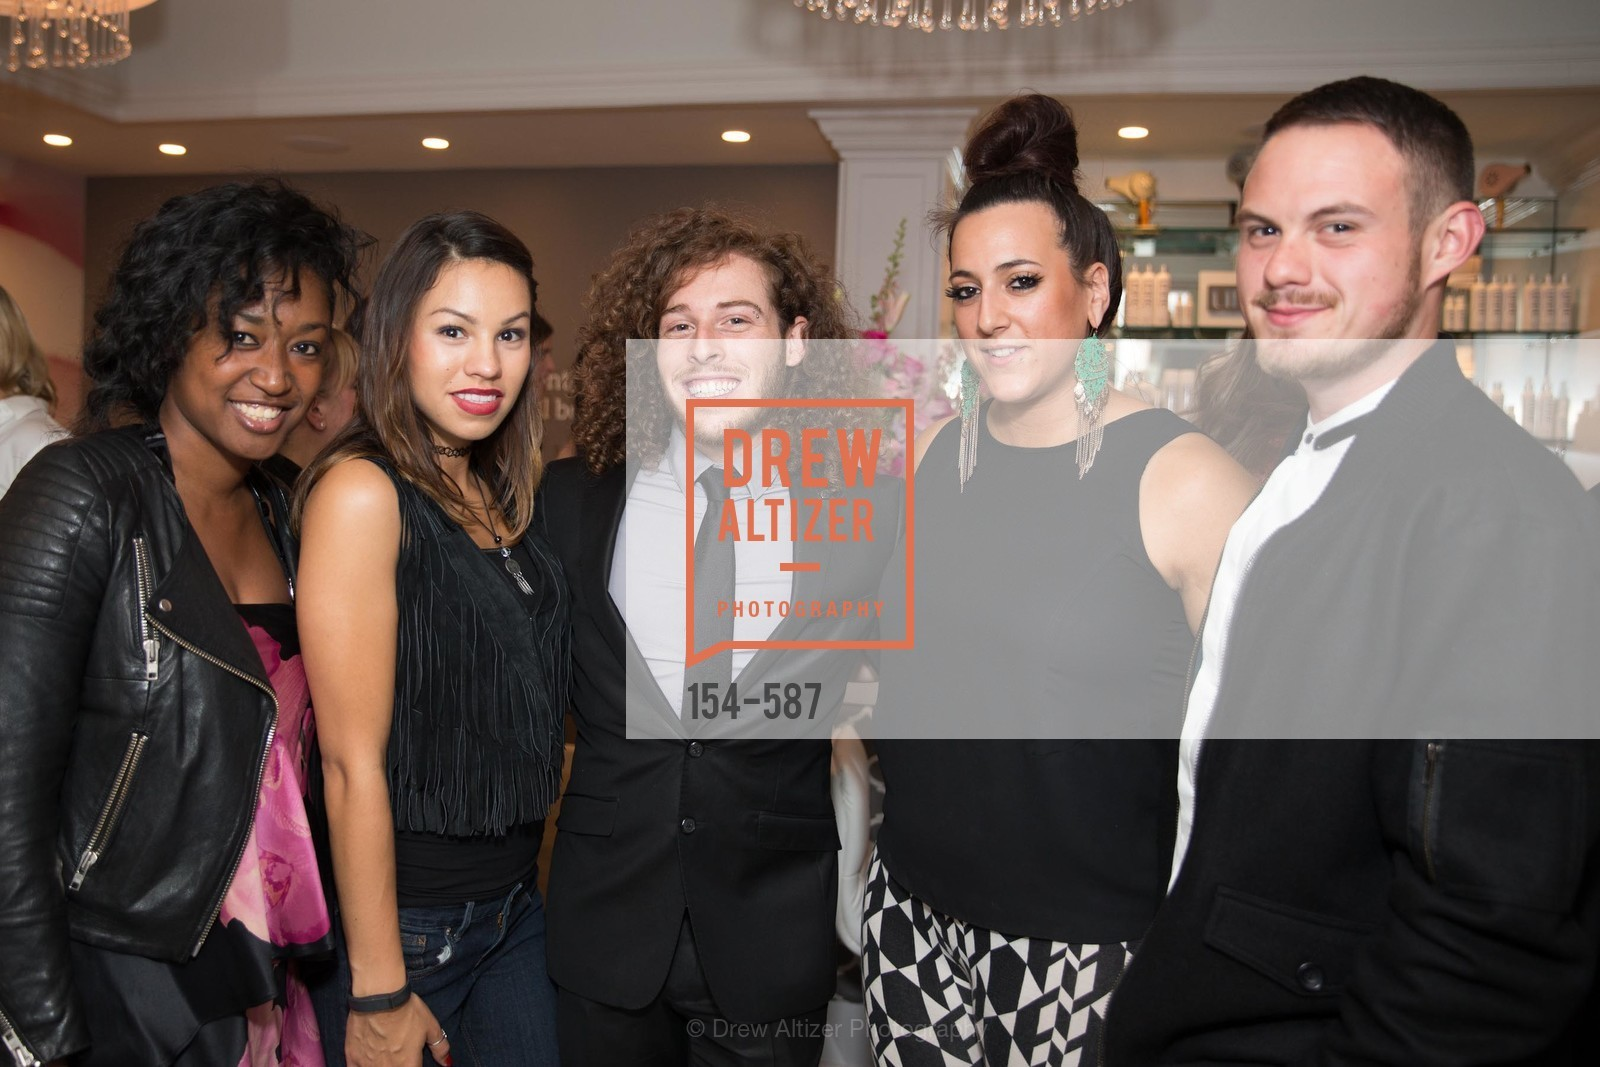 Jodi Rose, Ruby Gallardo, Aaron Gluck, Brttany Paz, Anthony Matcenas, BLOOM BLOW DRY BAR Grand Opening Party, US, October 2nd, 2014,Drew Altizer, Drew Altizer Photography, full-service agency, private events, San Francisco photographer, photographer california